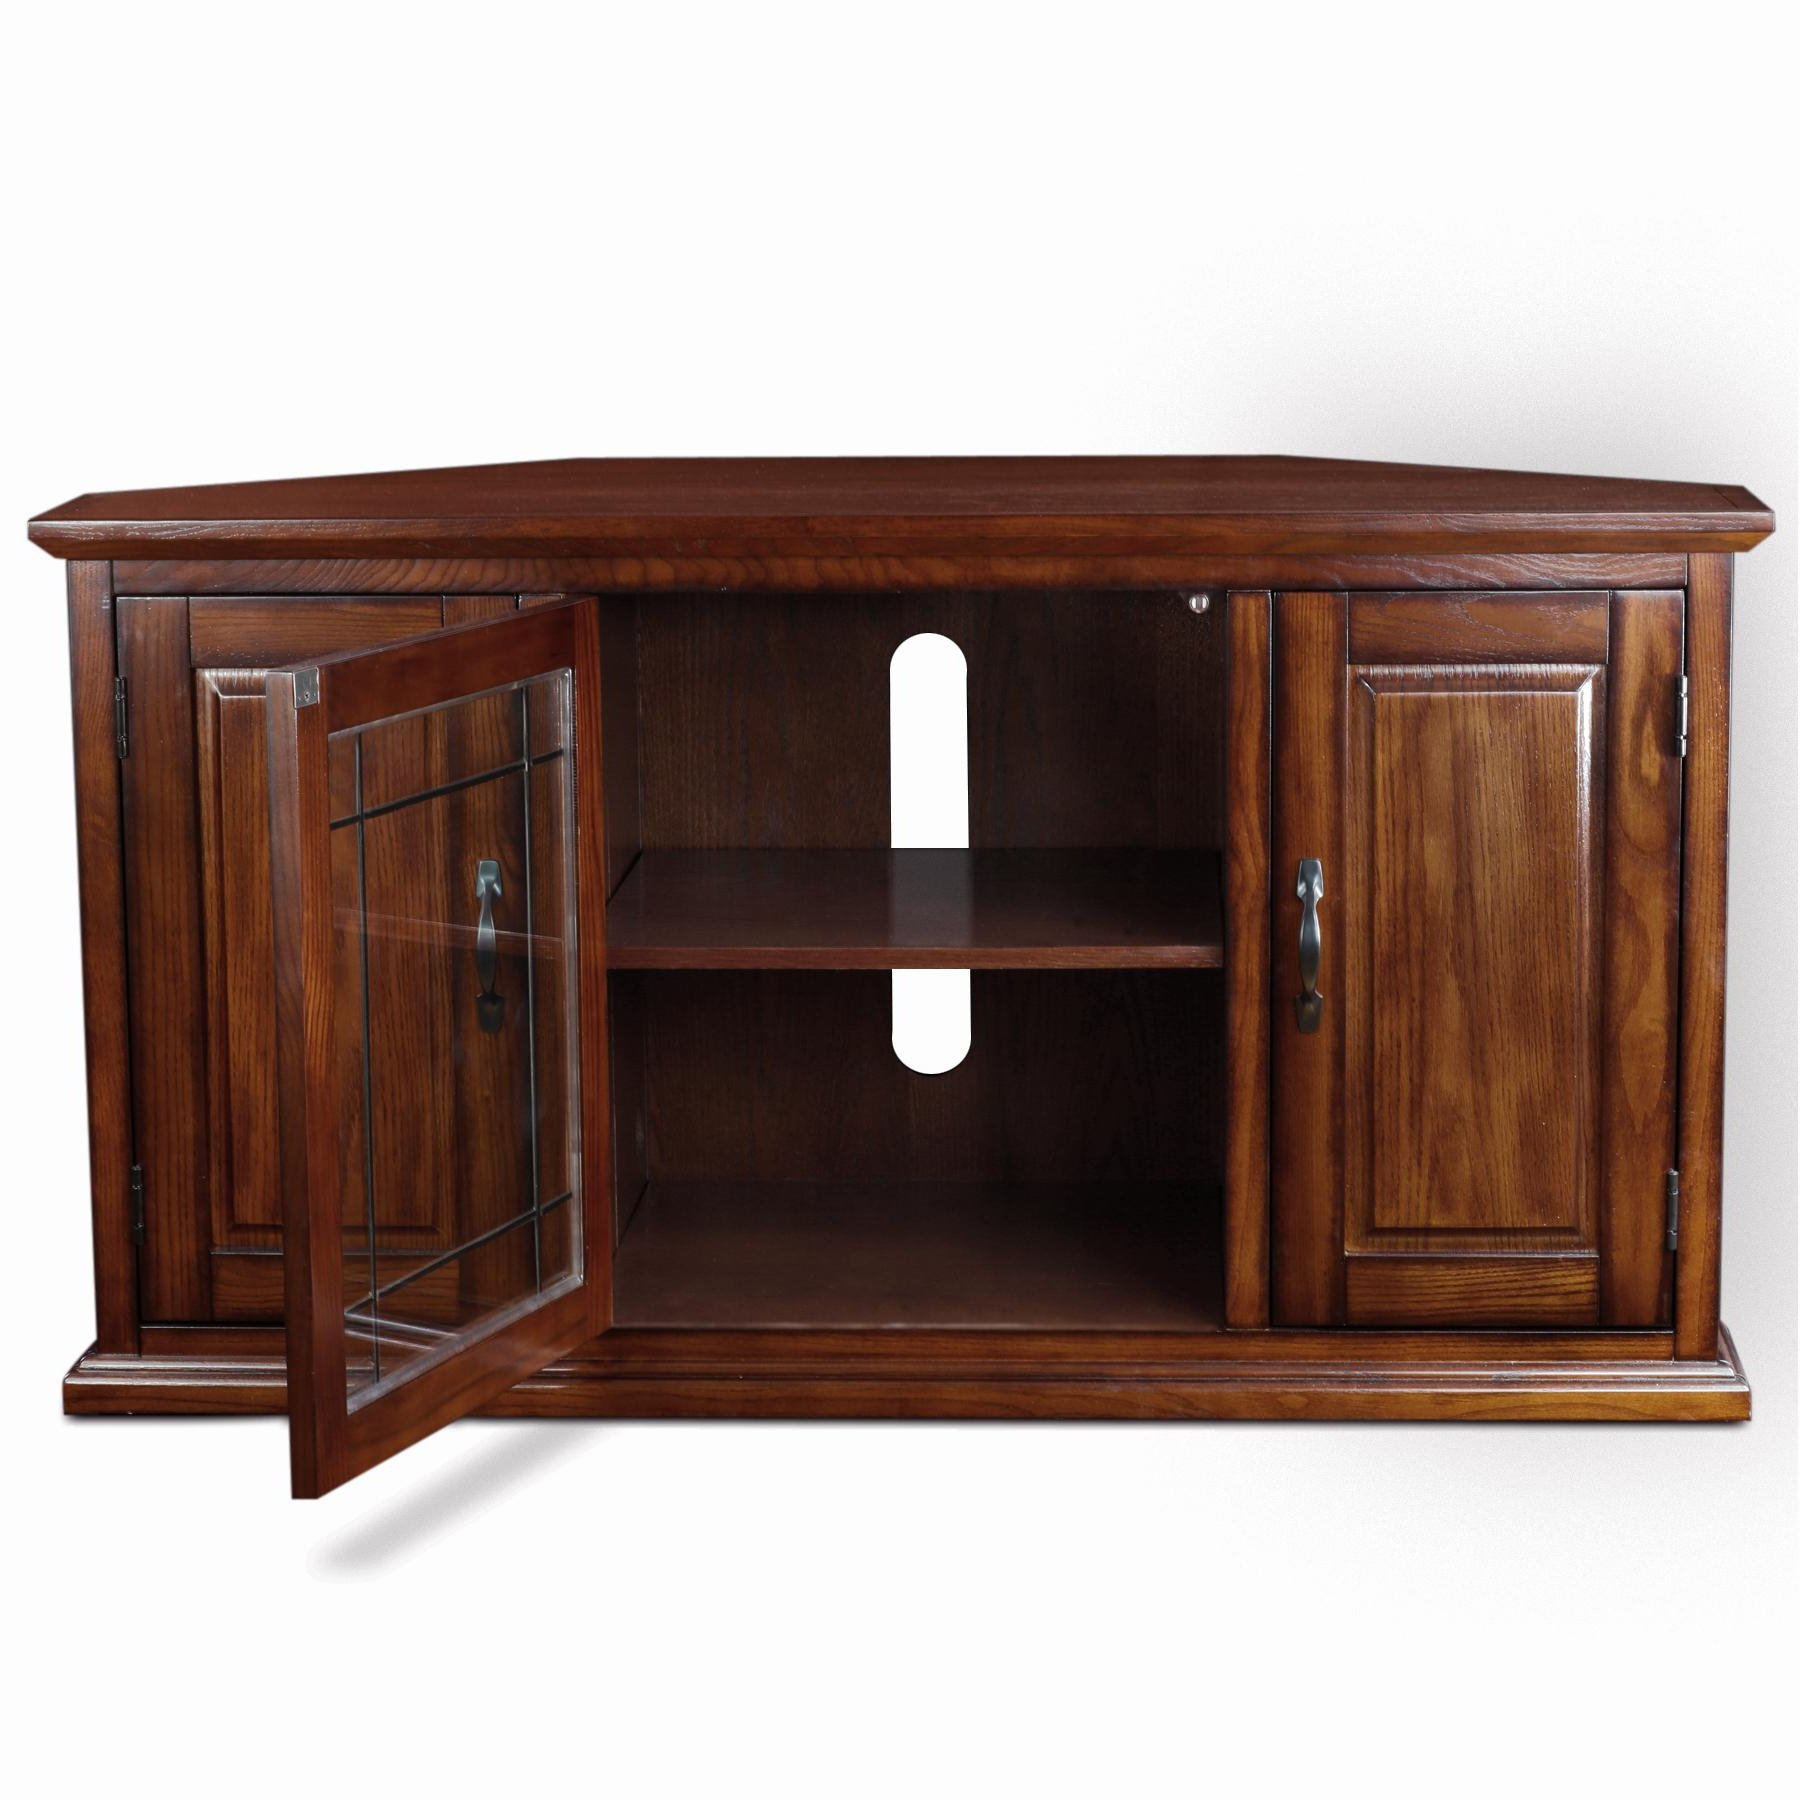 Best And Newest Tv Stands For Corner With Amazon: Leick 80385 Oak Leaded Glass Corner Tv Stand: Kitchen (Gallery 20 of 20)